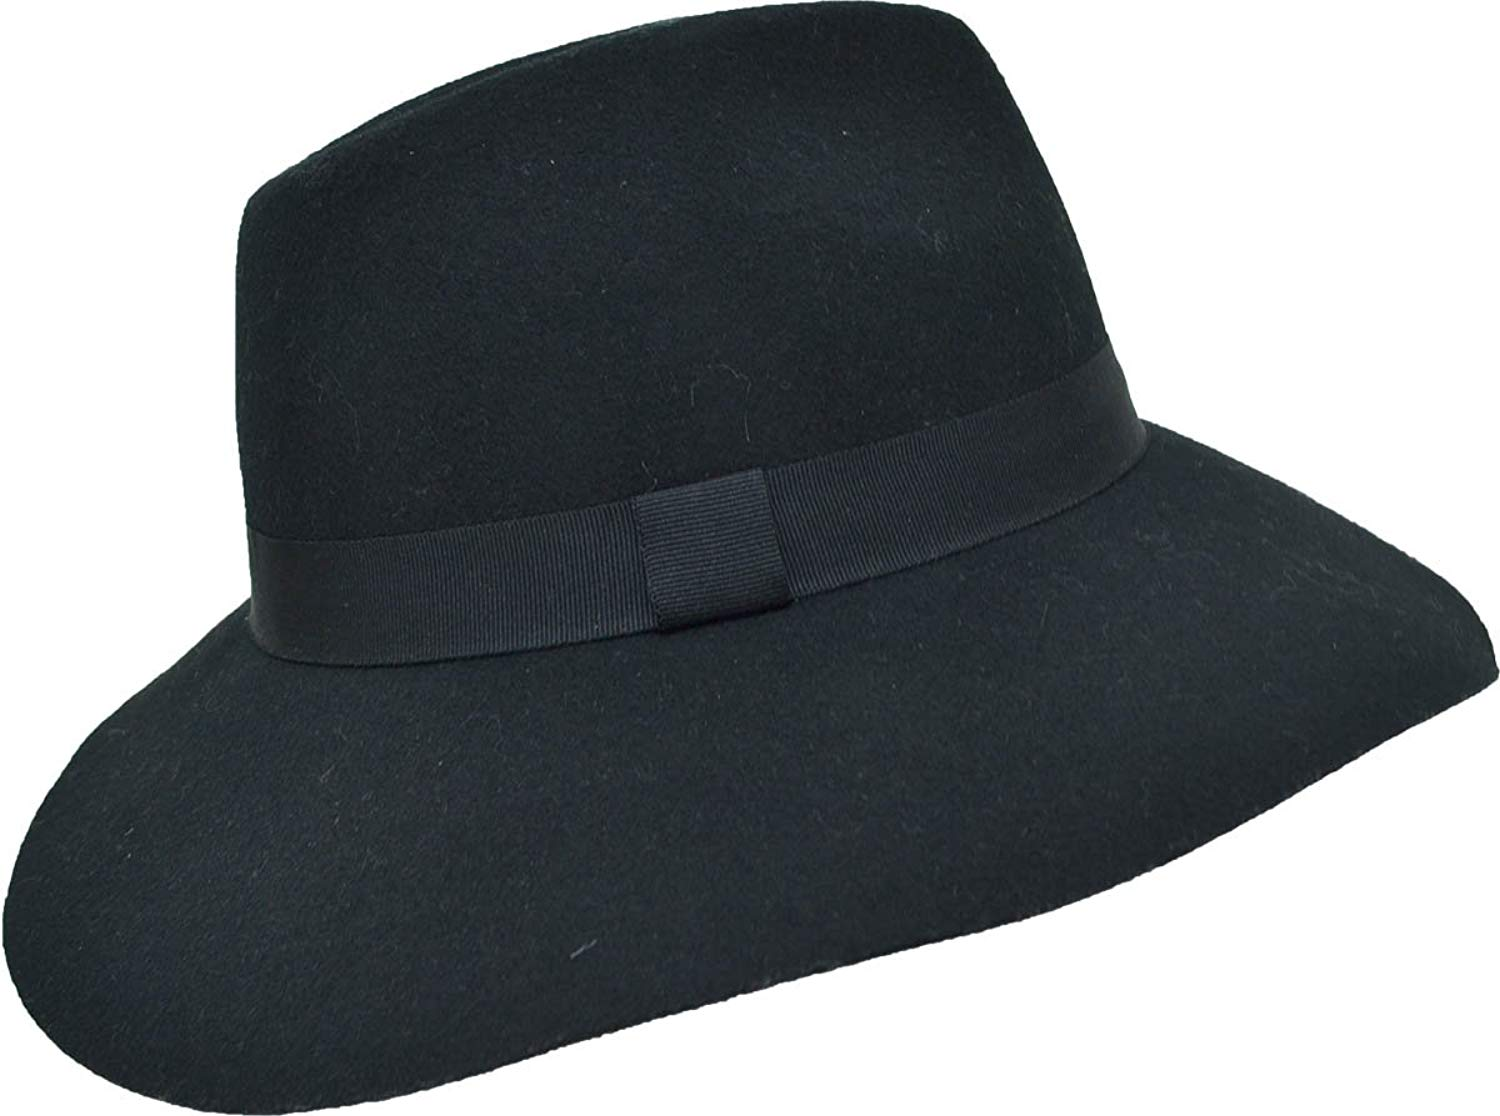 6f132a54970 reduced get quotations august hat company womens large felt fedora hat  black gold 00238 46cfd